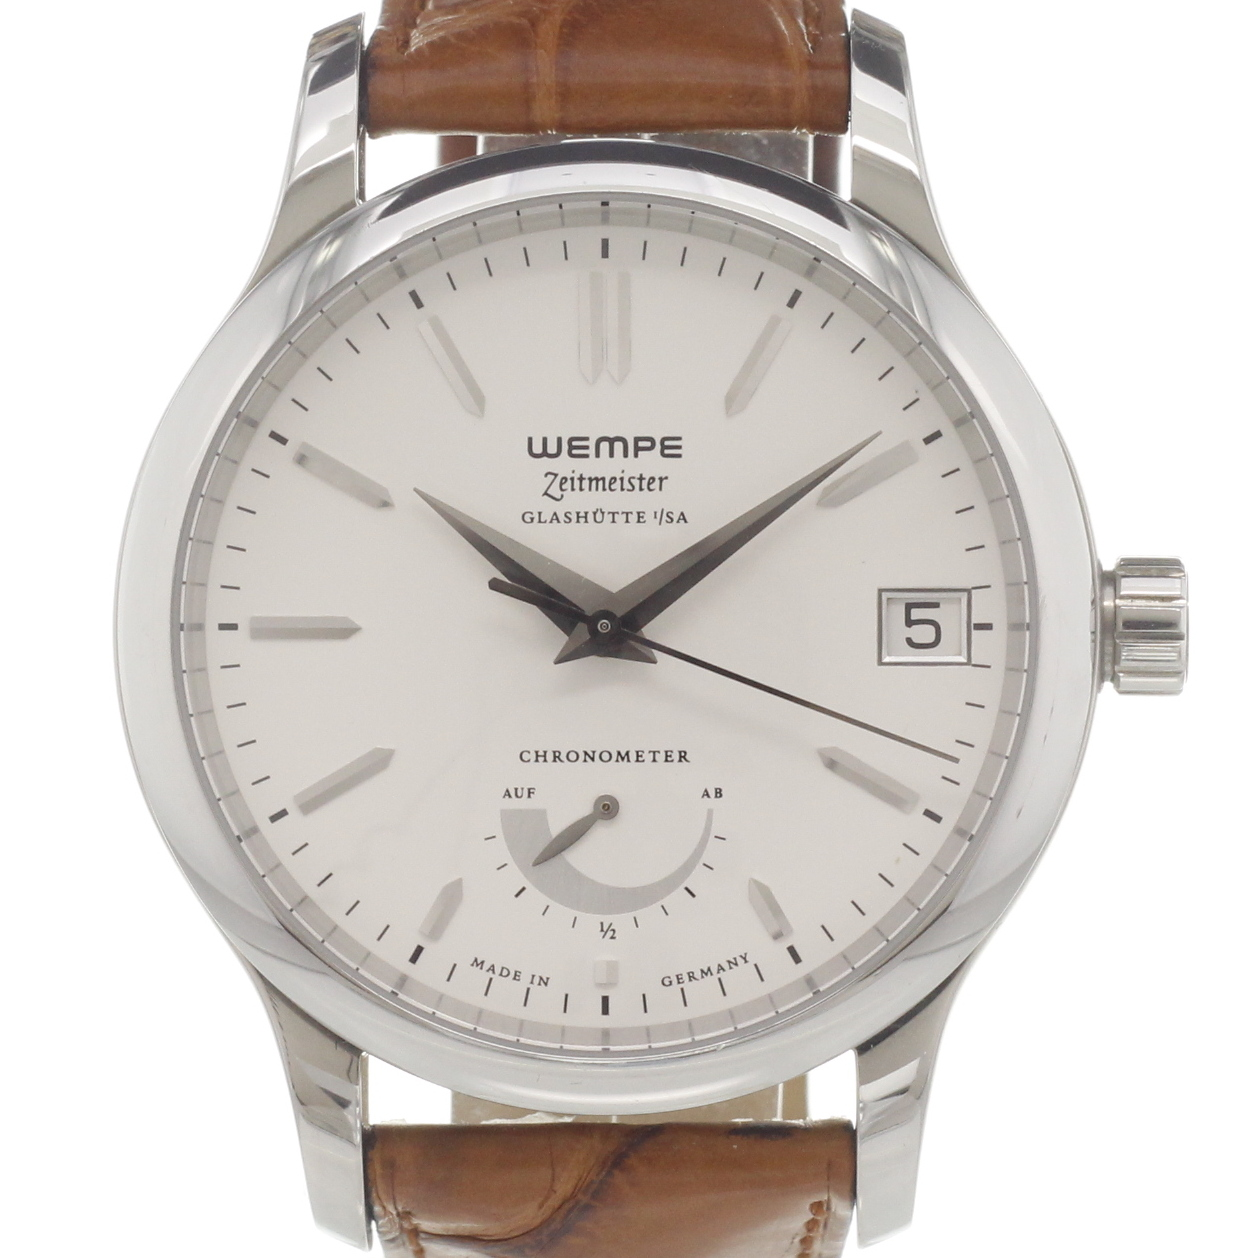 wempe watches for sale offerings and prices chronext